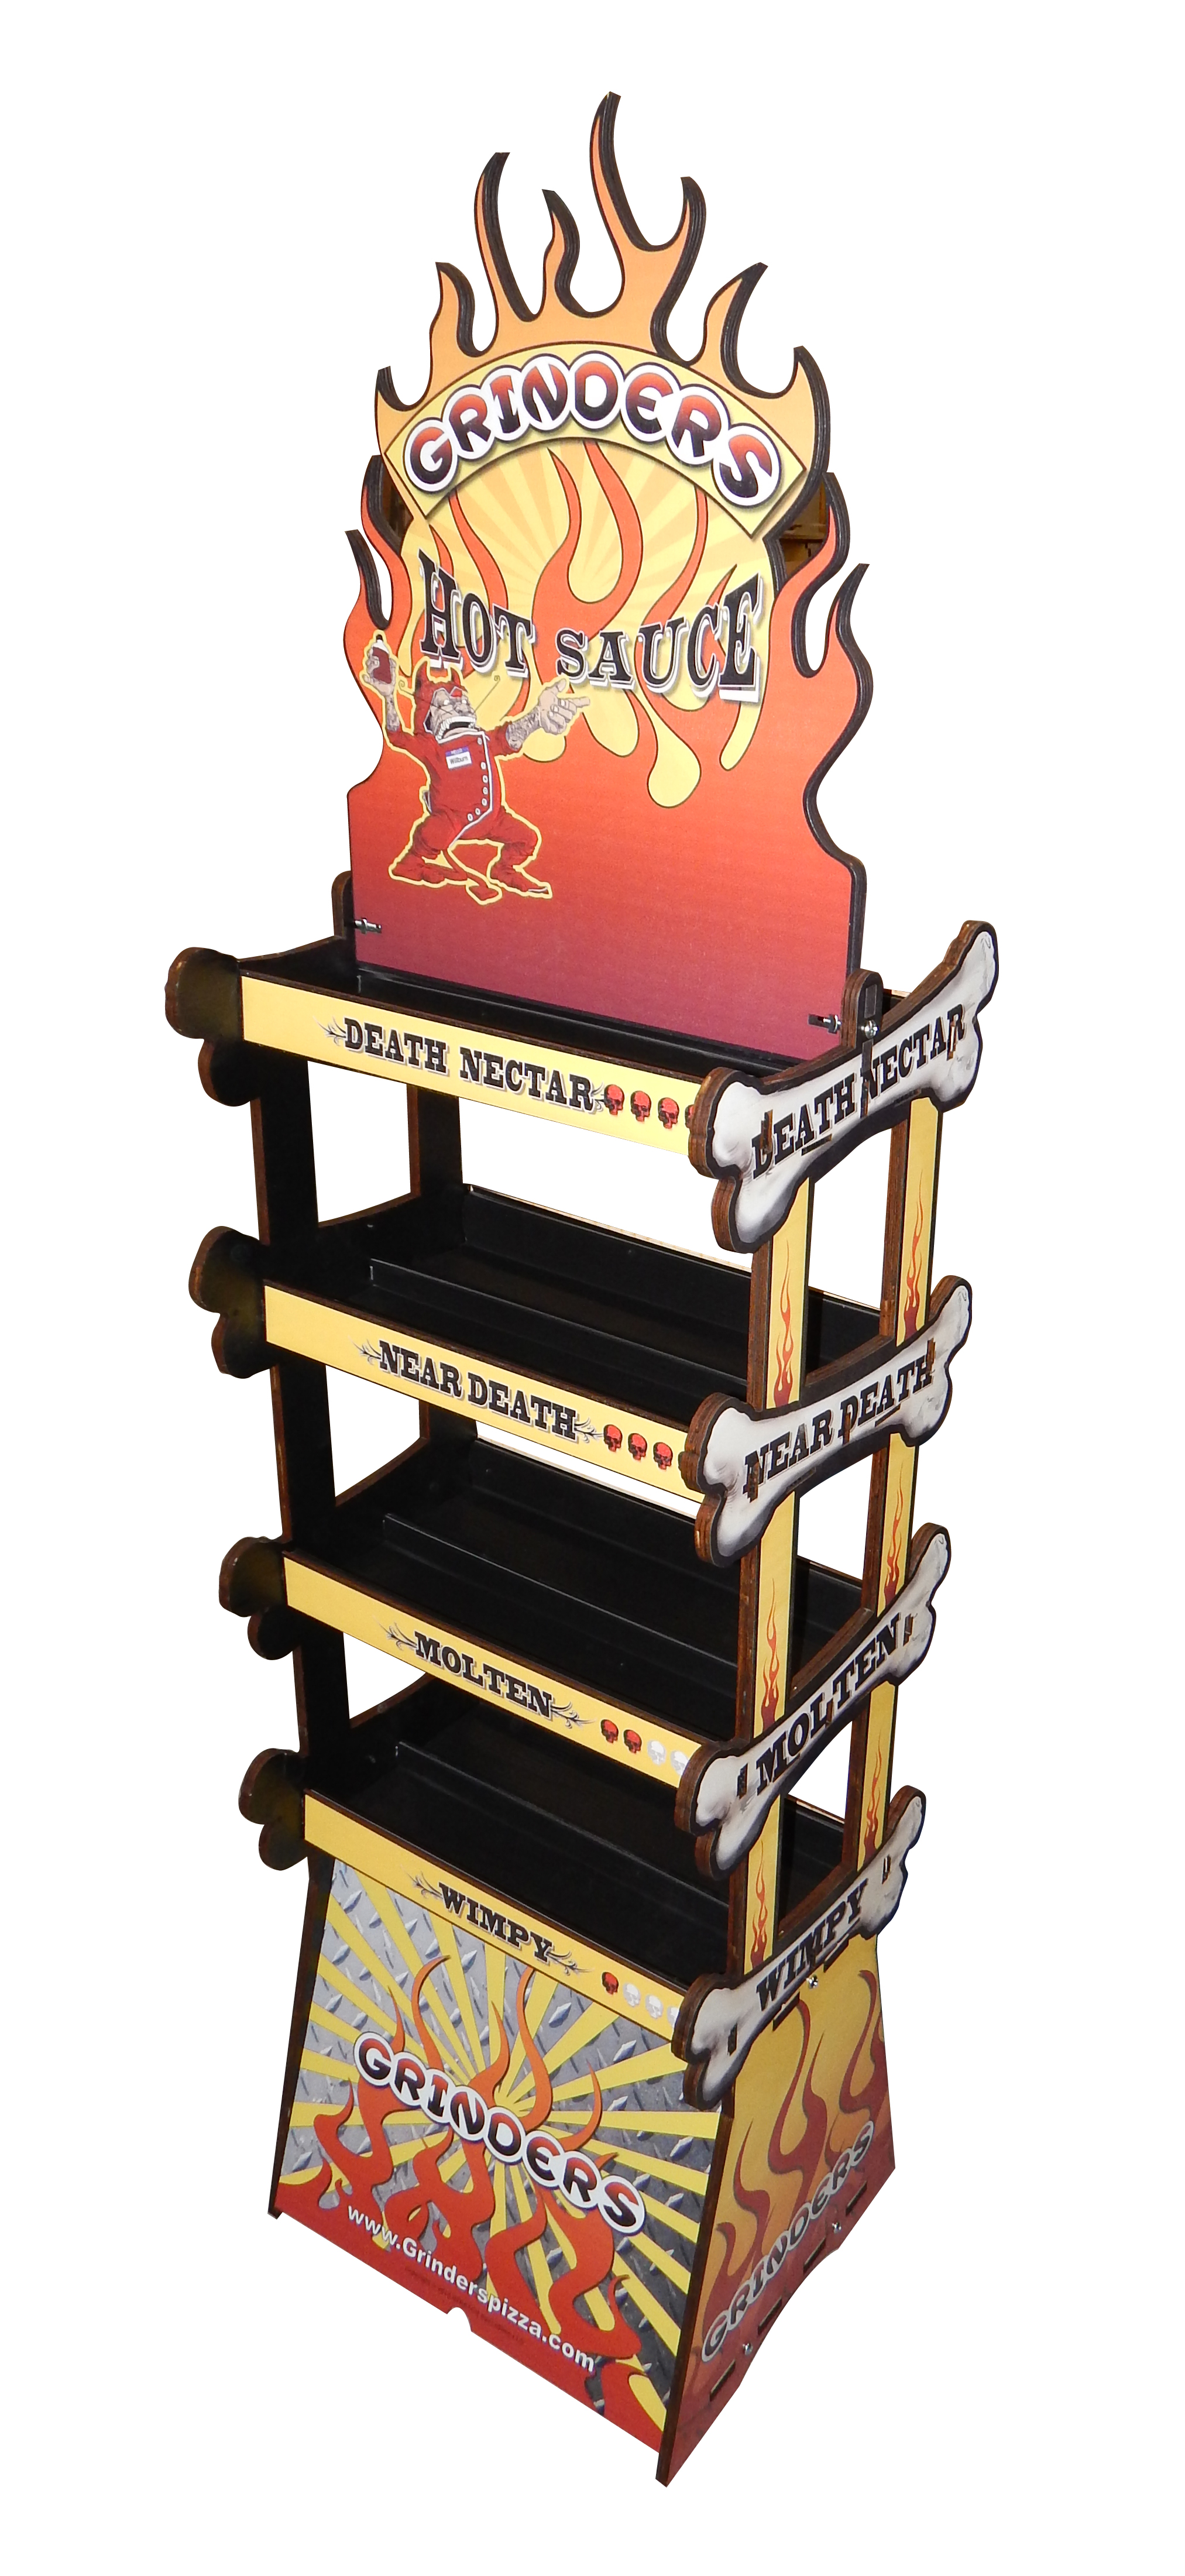 Grinders Hot Sauce Rack Display